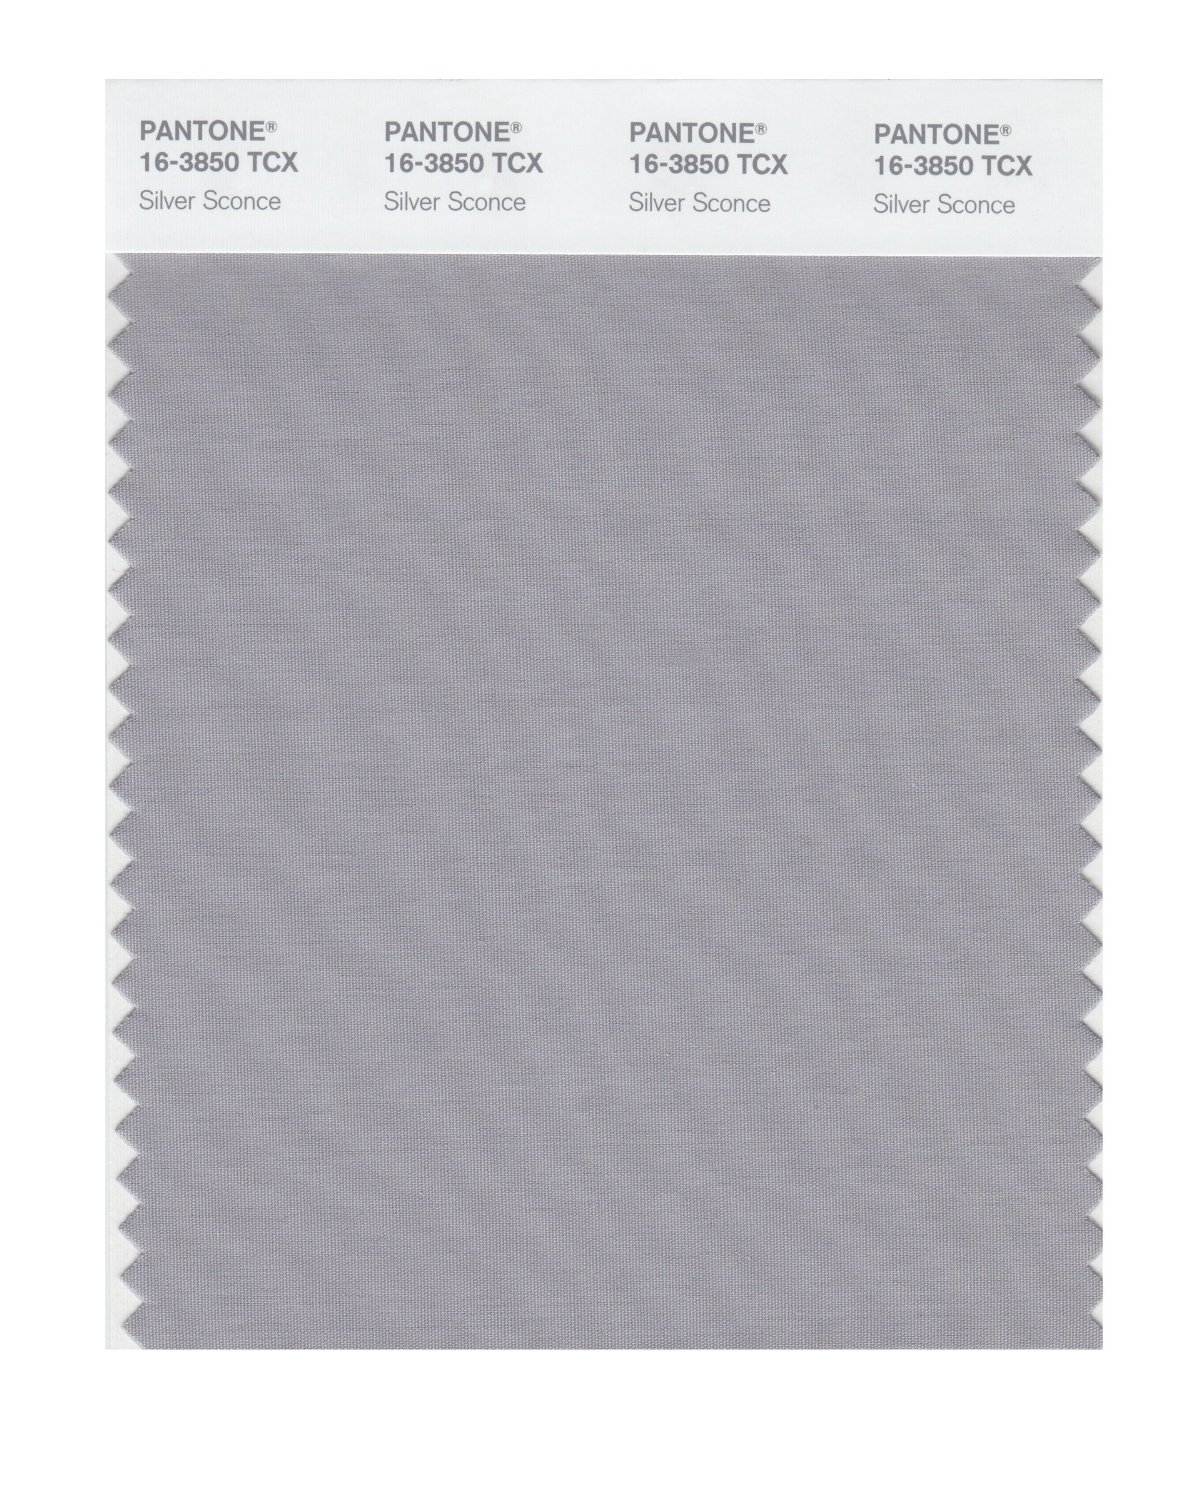 Pantone Smart Swatch 16-3850 Silver Sconce